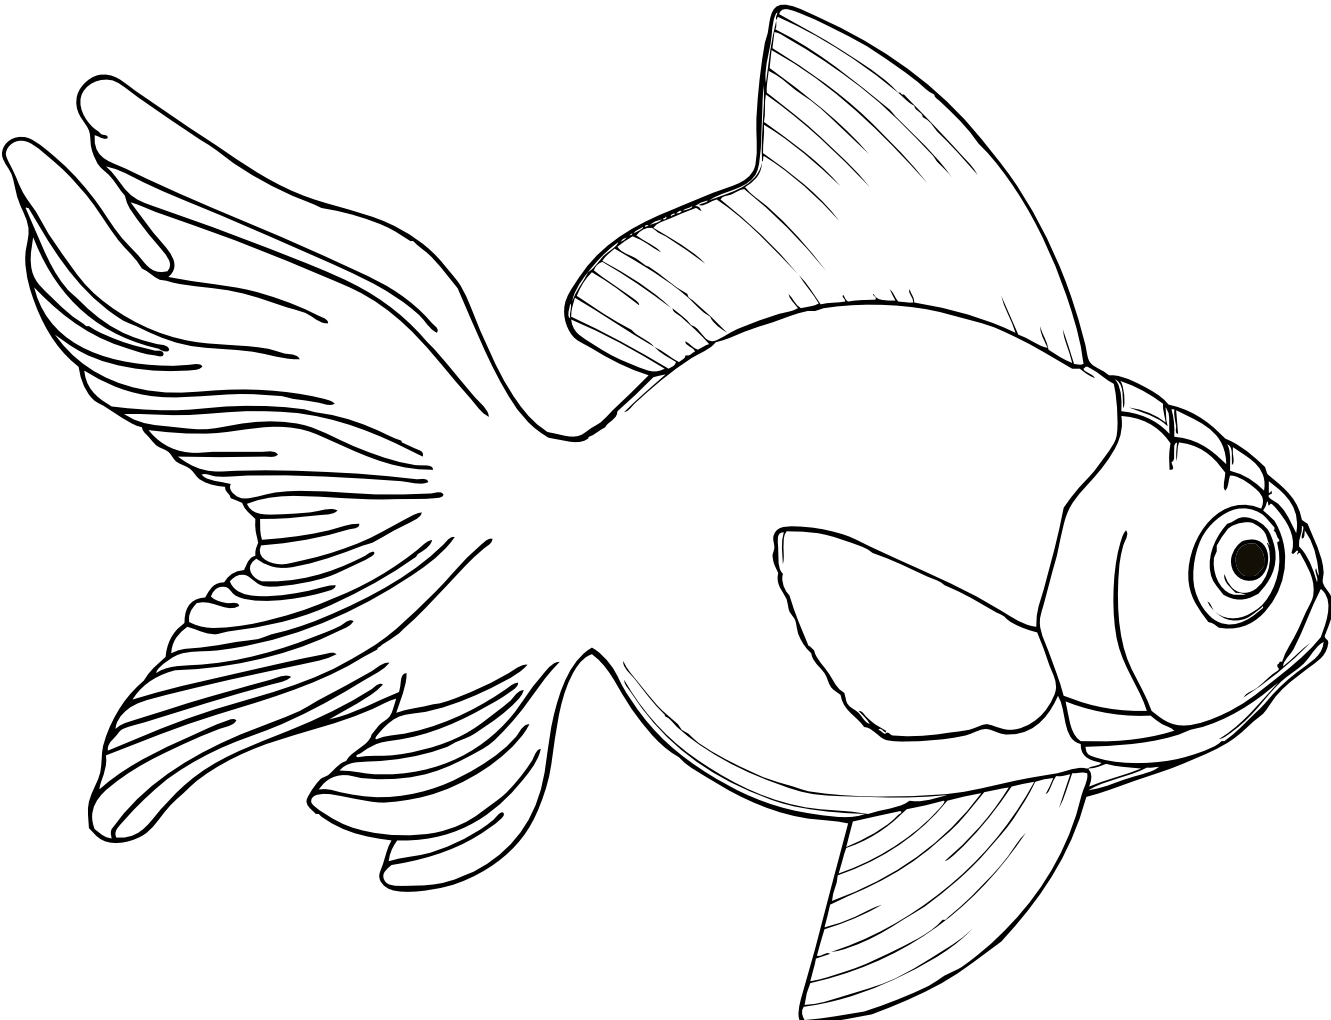 Sunfish drawing art. Clipart fish line pencil